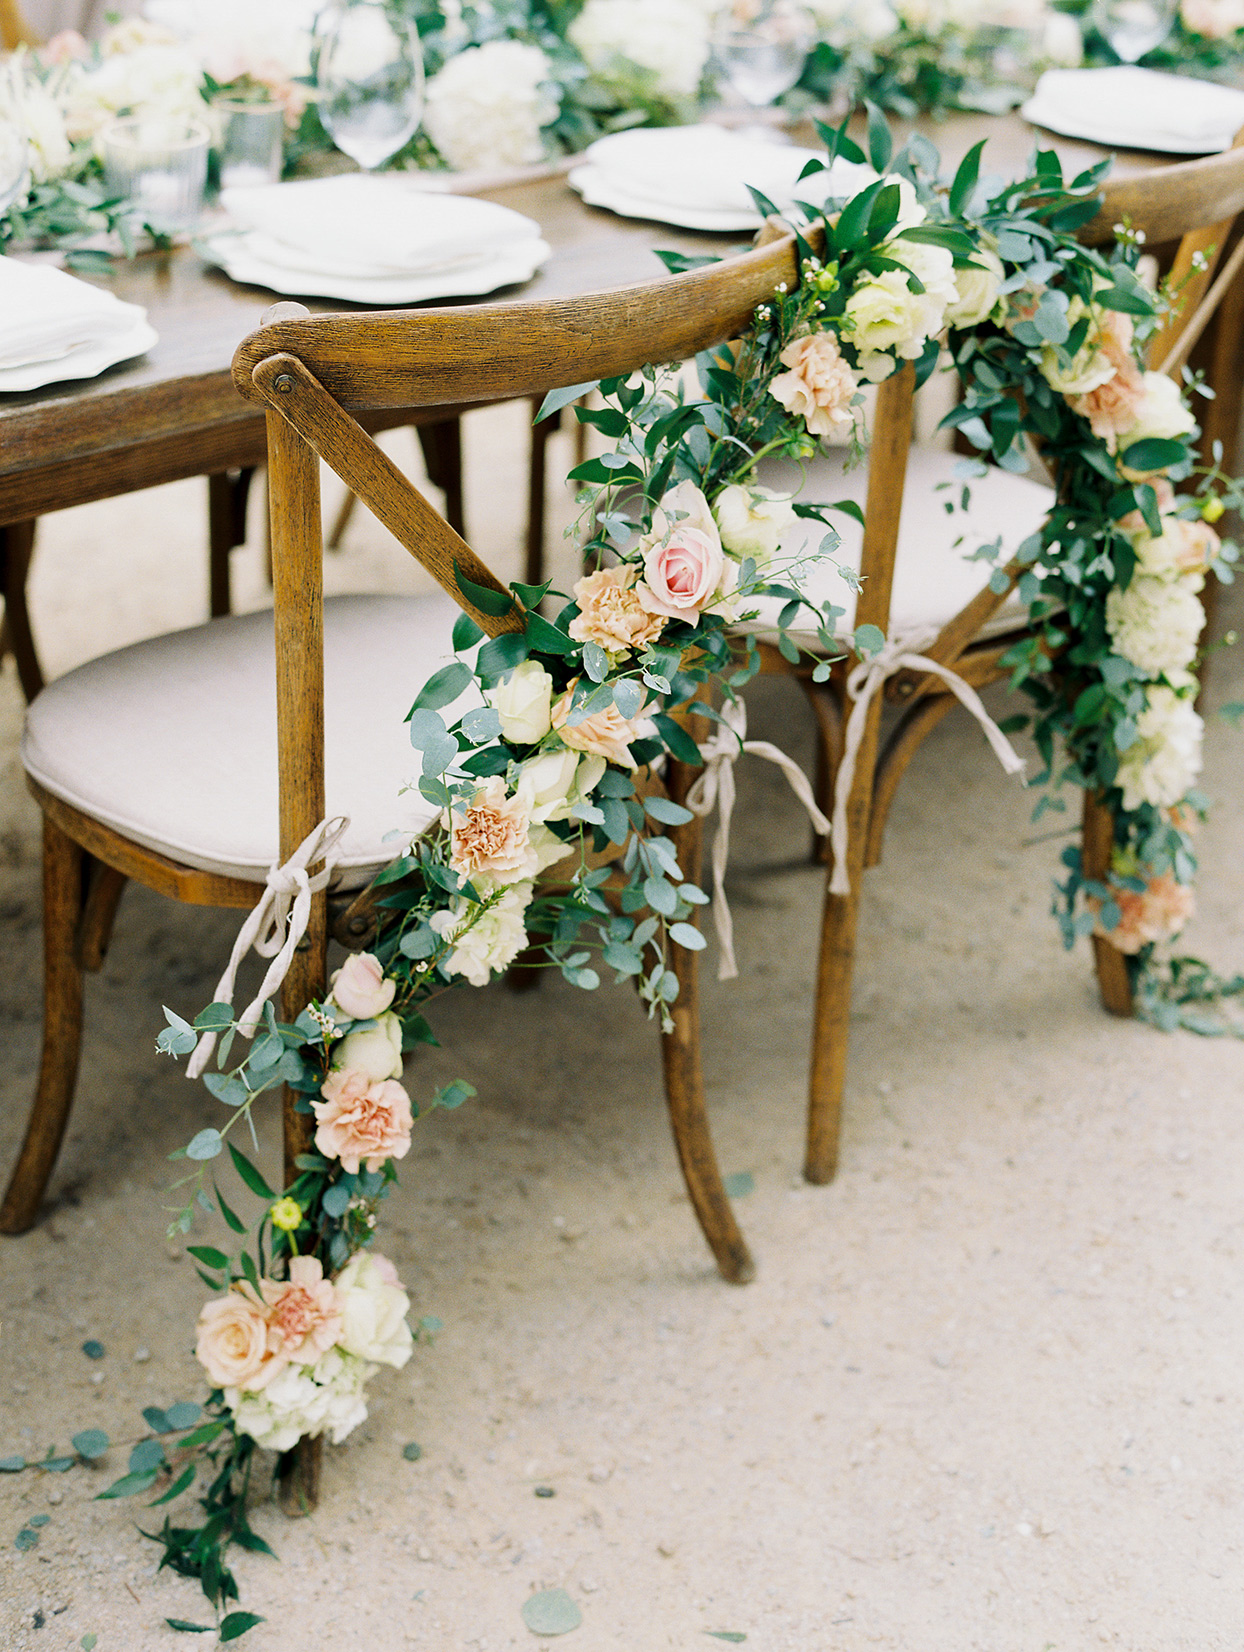 mika steve wedding chairs with floral garland